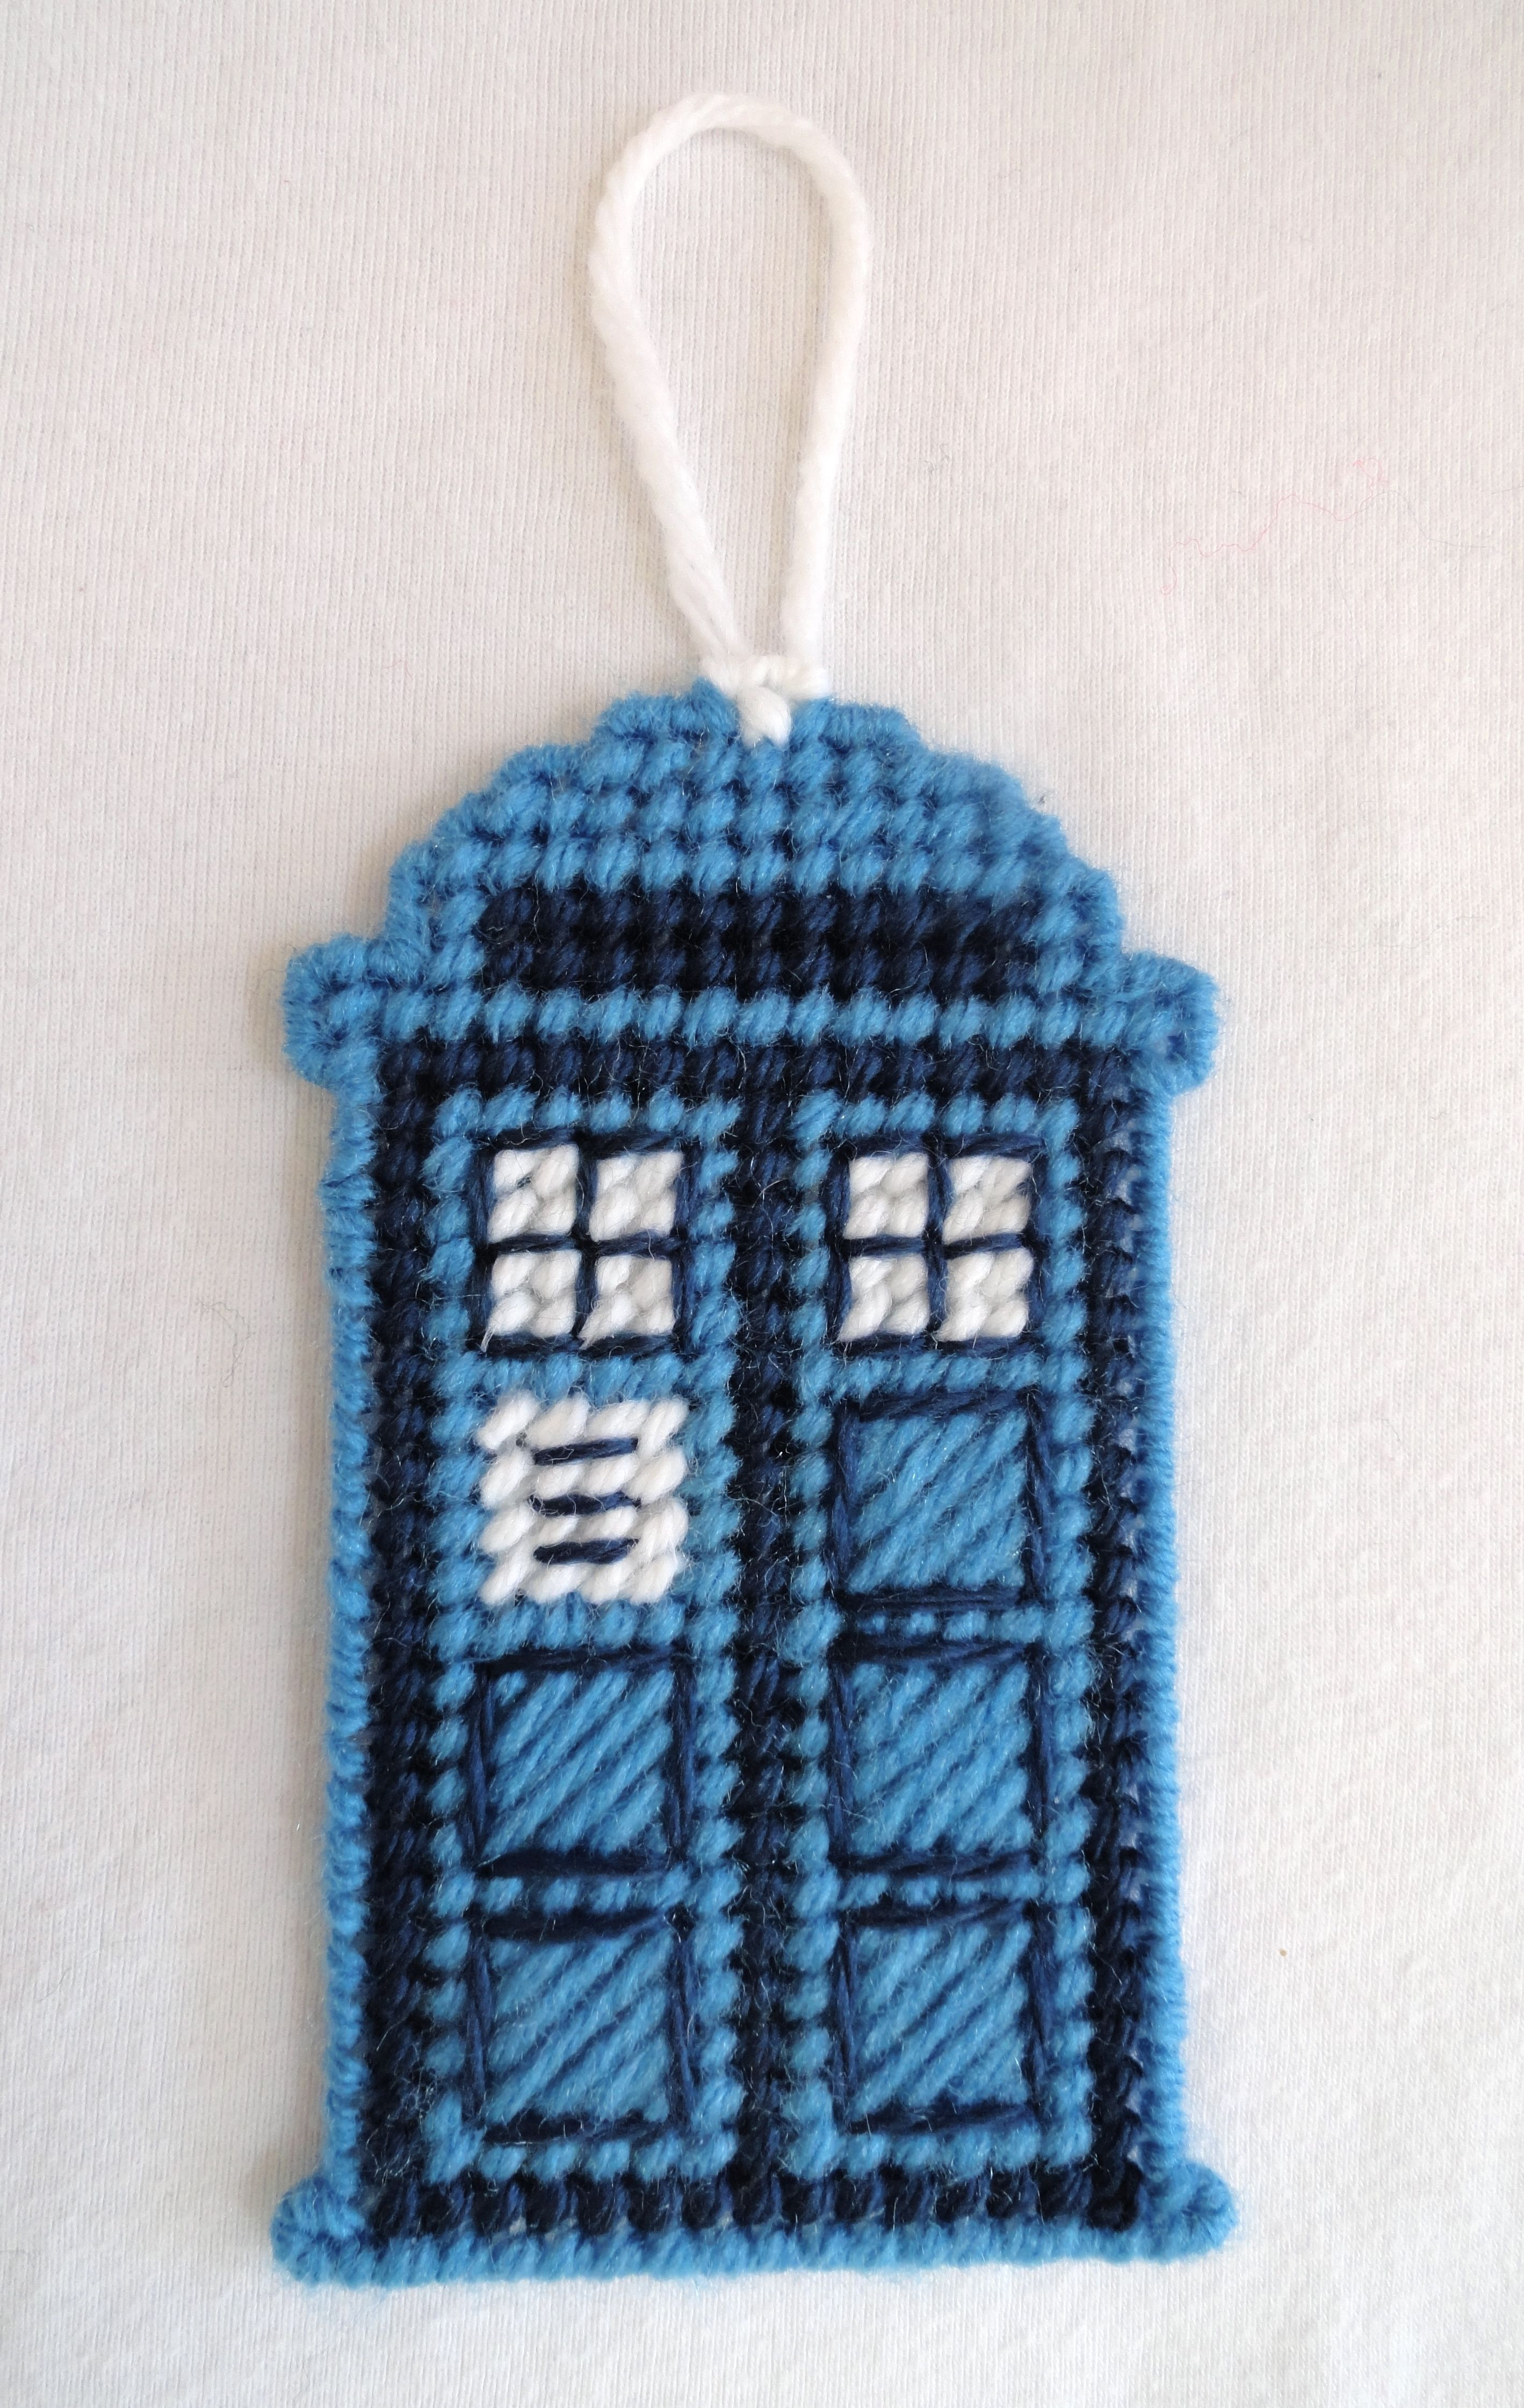 Dr who tardis police call booth needlepoint on plastic canvas back by sue roddy auf plastik - Tardis selber bauen ...